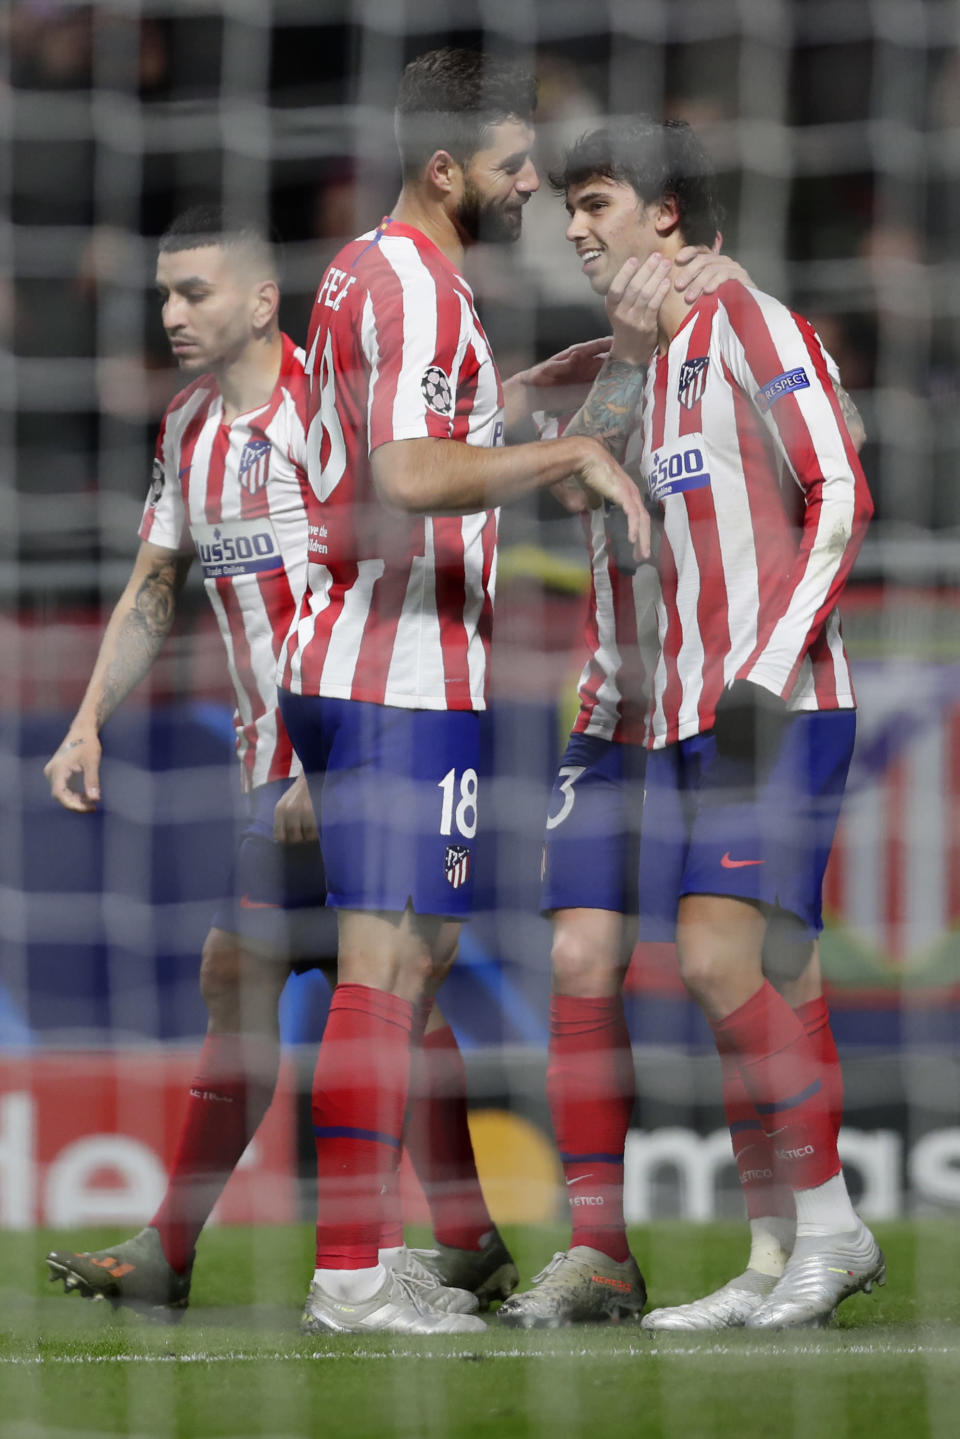 Atletico Madrid's Joao Felix celebrates with teammates after scoring the opening goal during the Champions League Group D soccer match between Atletico Madrid and Lokomotiv Moscow at Wanda Metropolitano stadium in Madrid, Spain, Wednesday, Dec. 11, 2019. (AP Photo/Manu Fernandez)